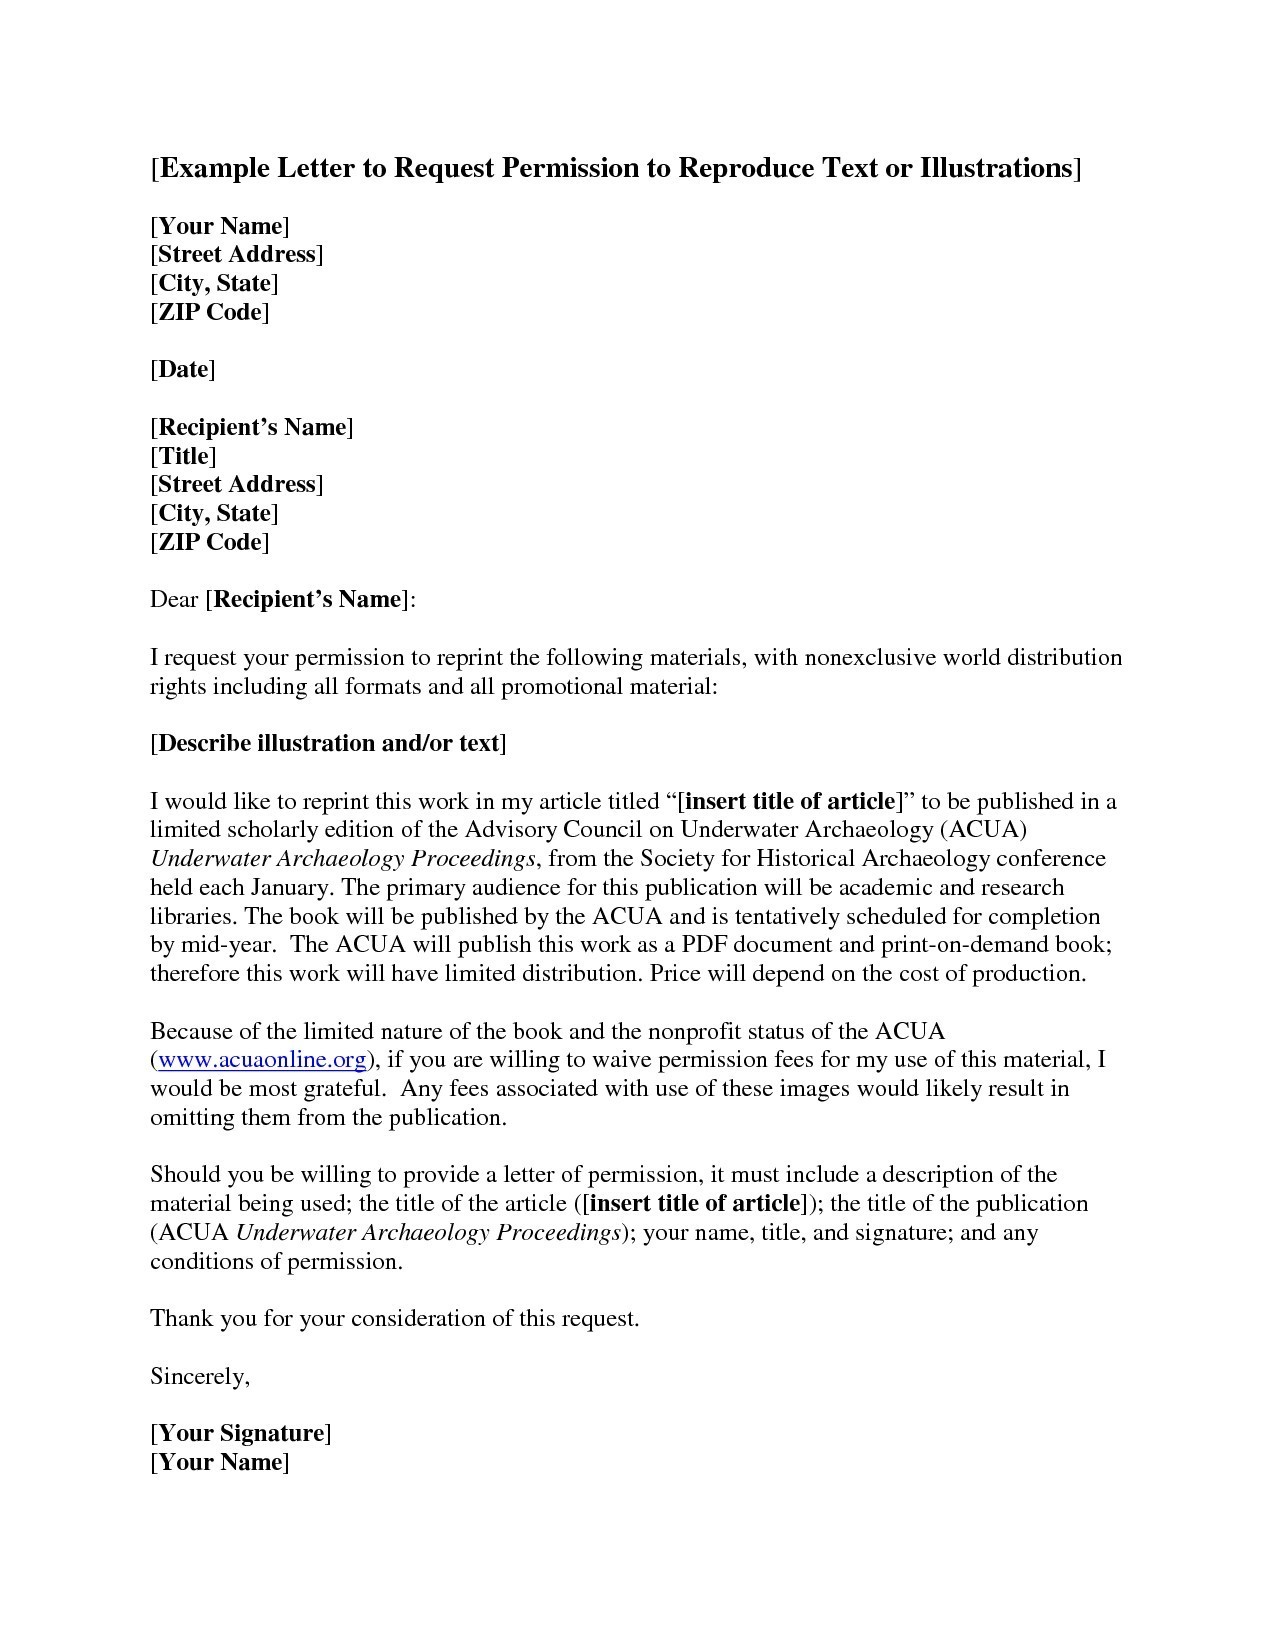 Copyright Permission Letter Template - Leave Application for Sisters Marriage Sample Permission Letter